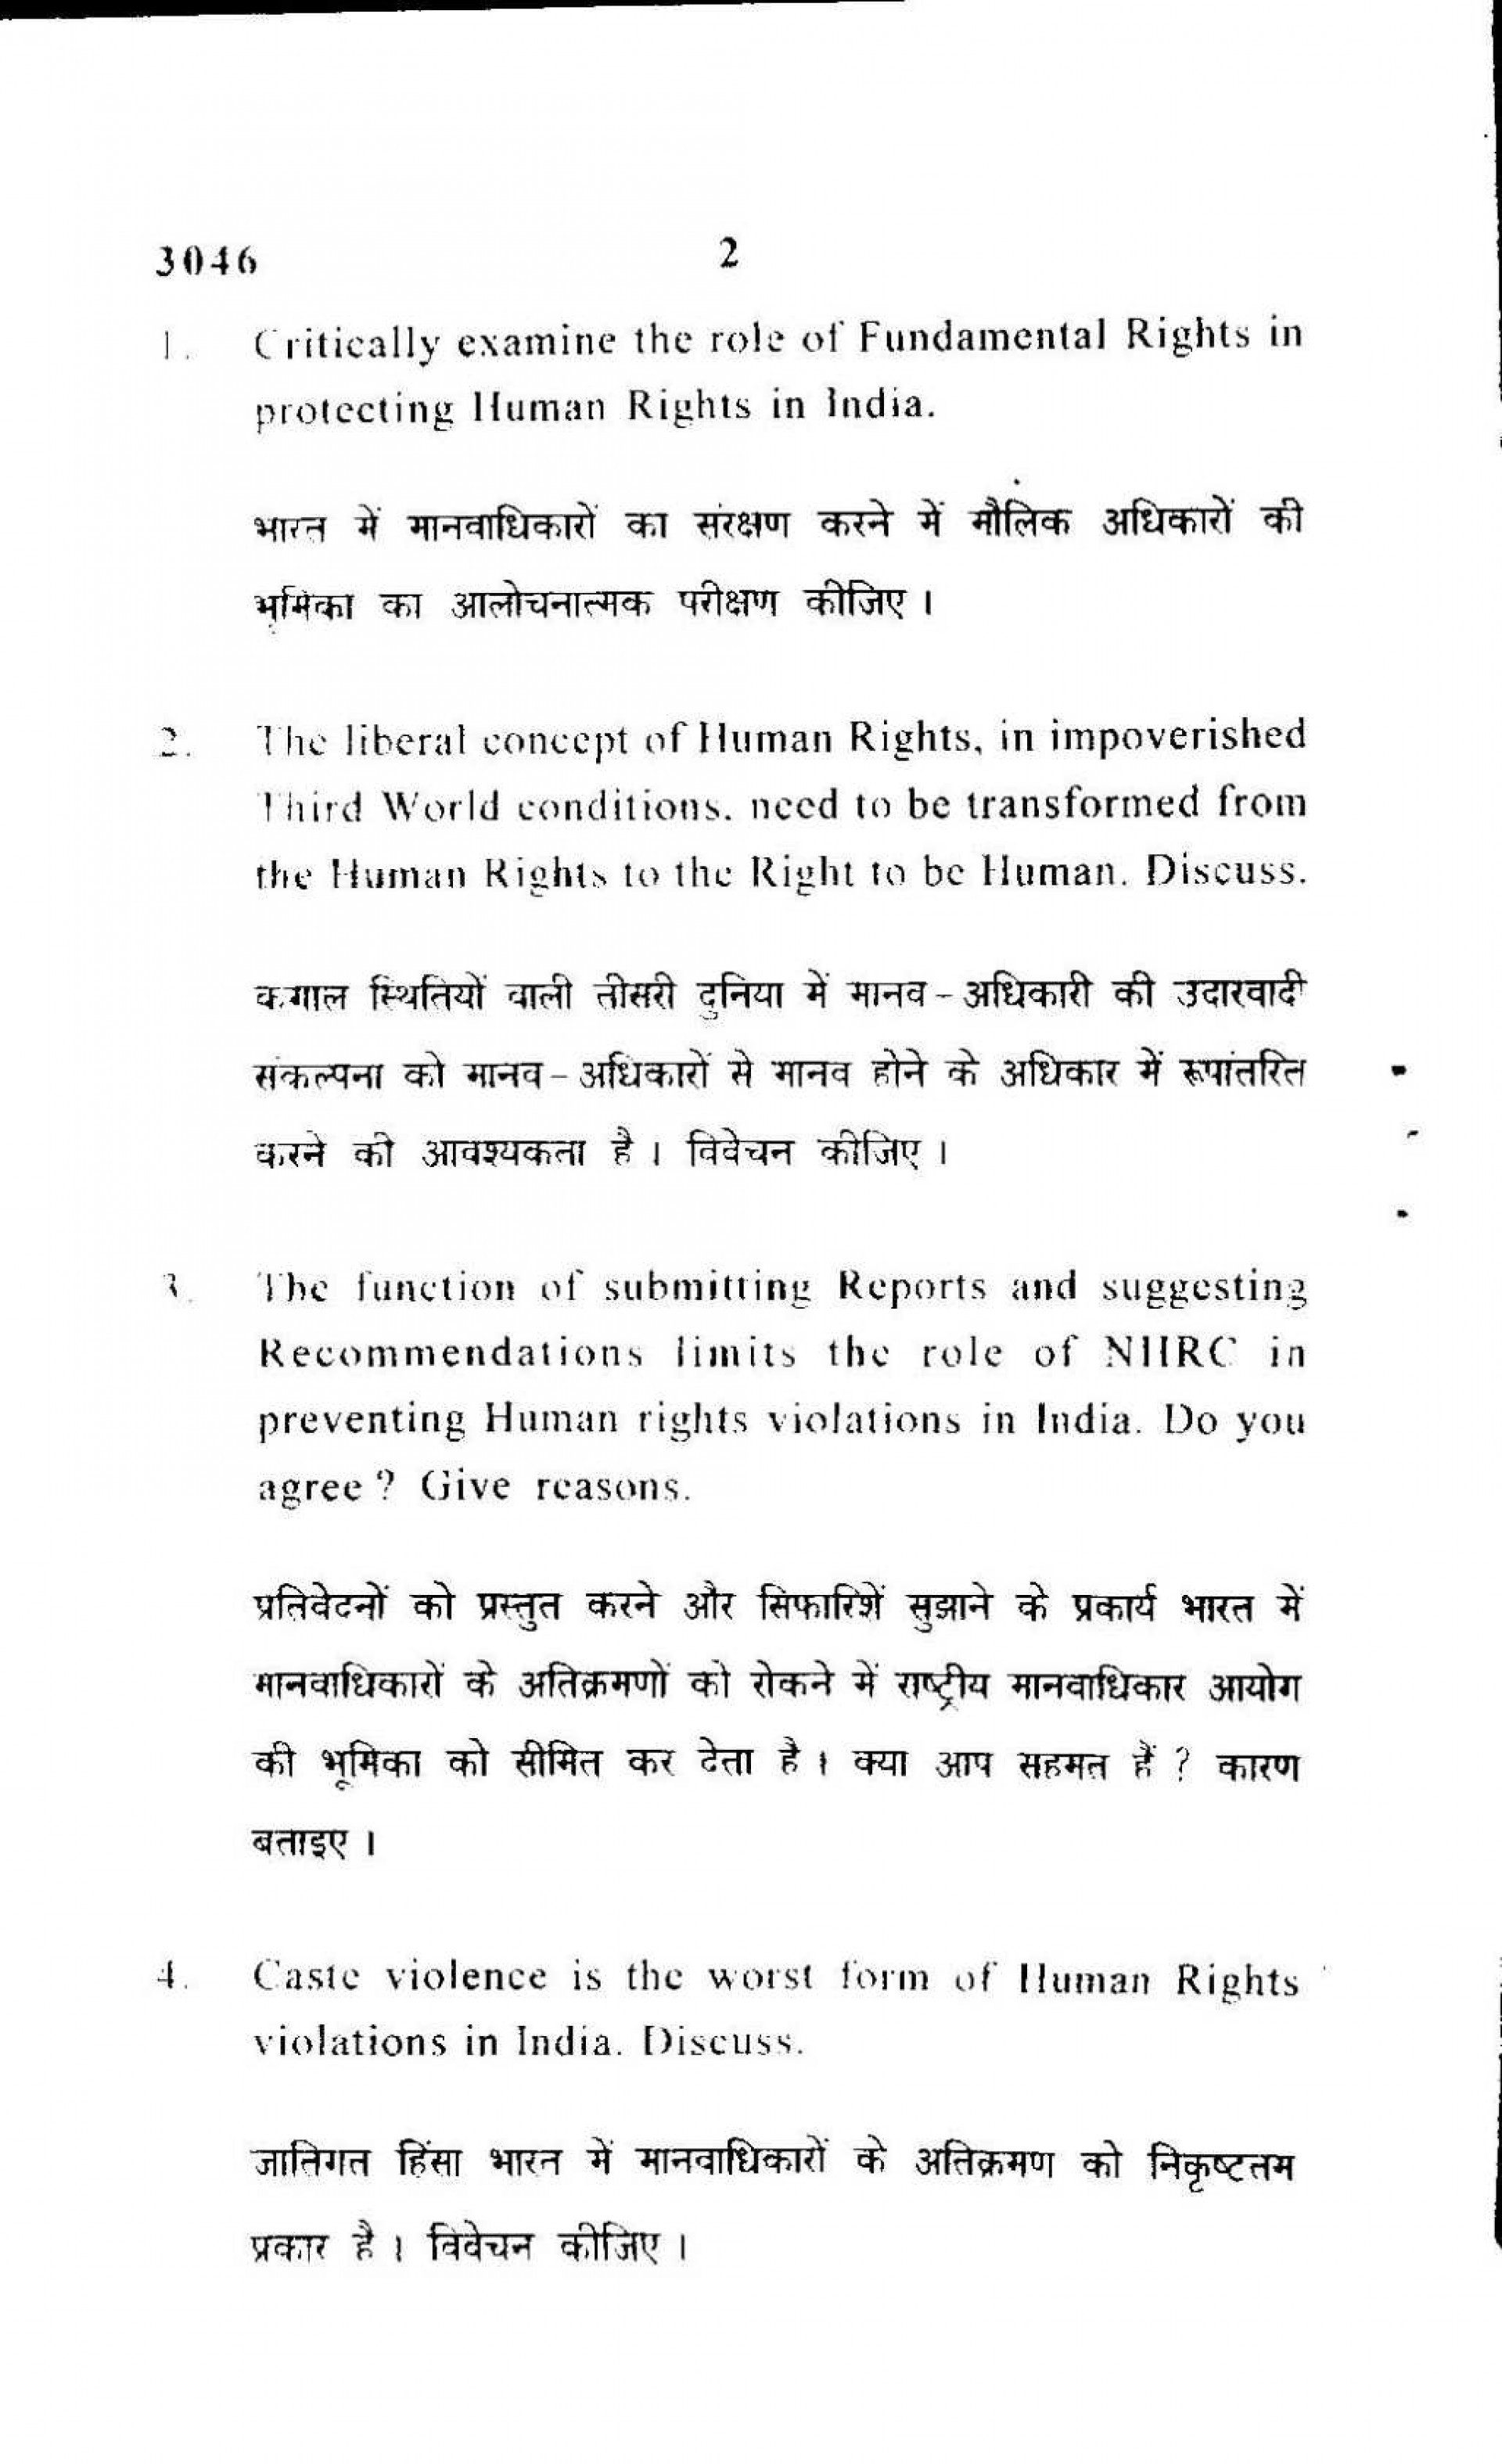 009 Previous Question Papers For Ma Political Science Delhi University Essay Topics Stirring Party Questions Argumentative Geography Paper 1920